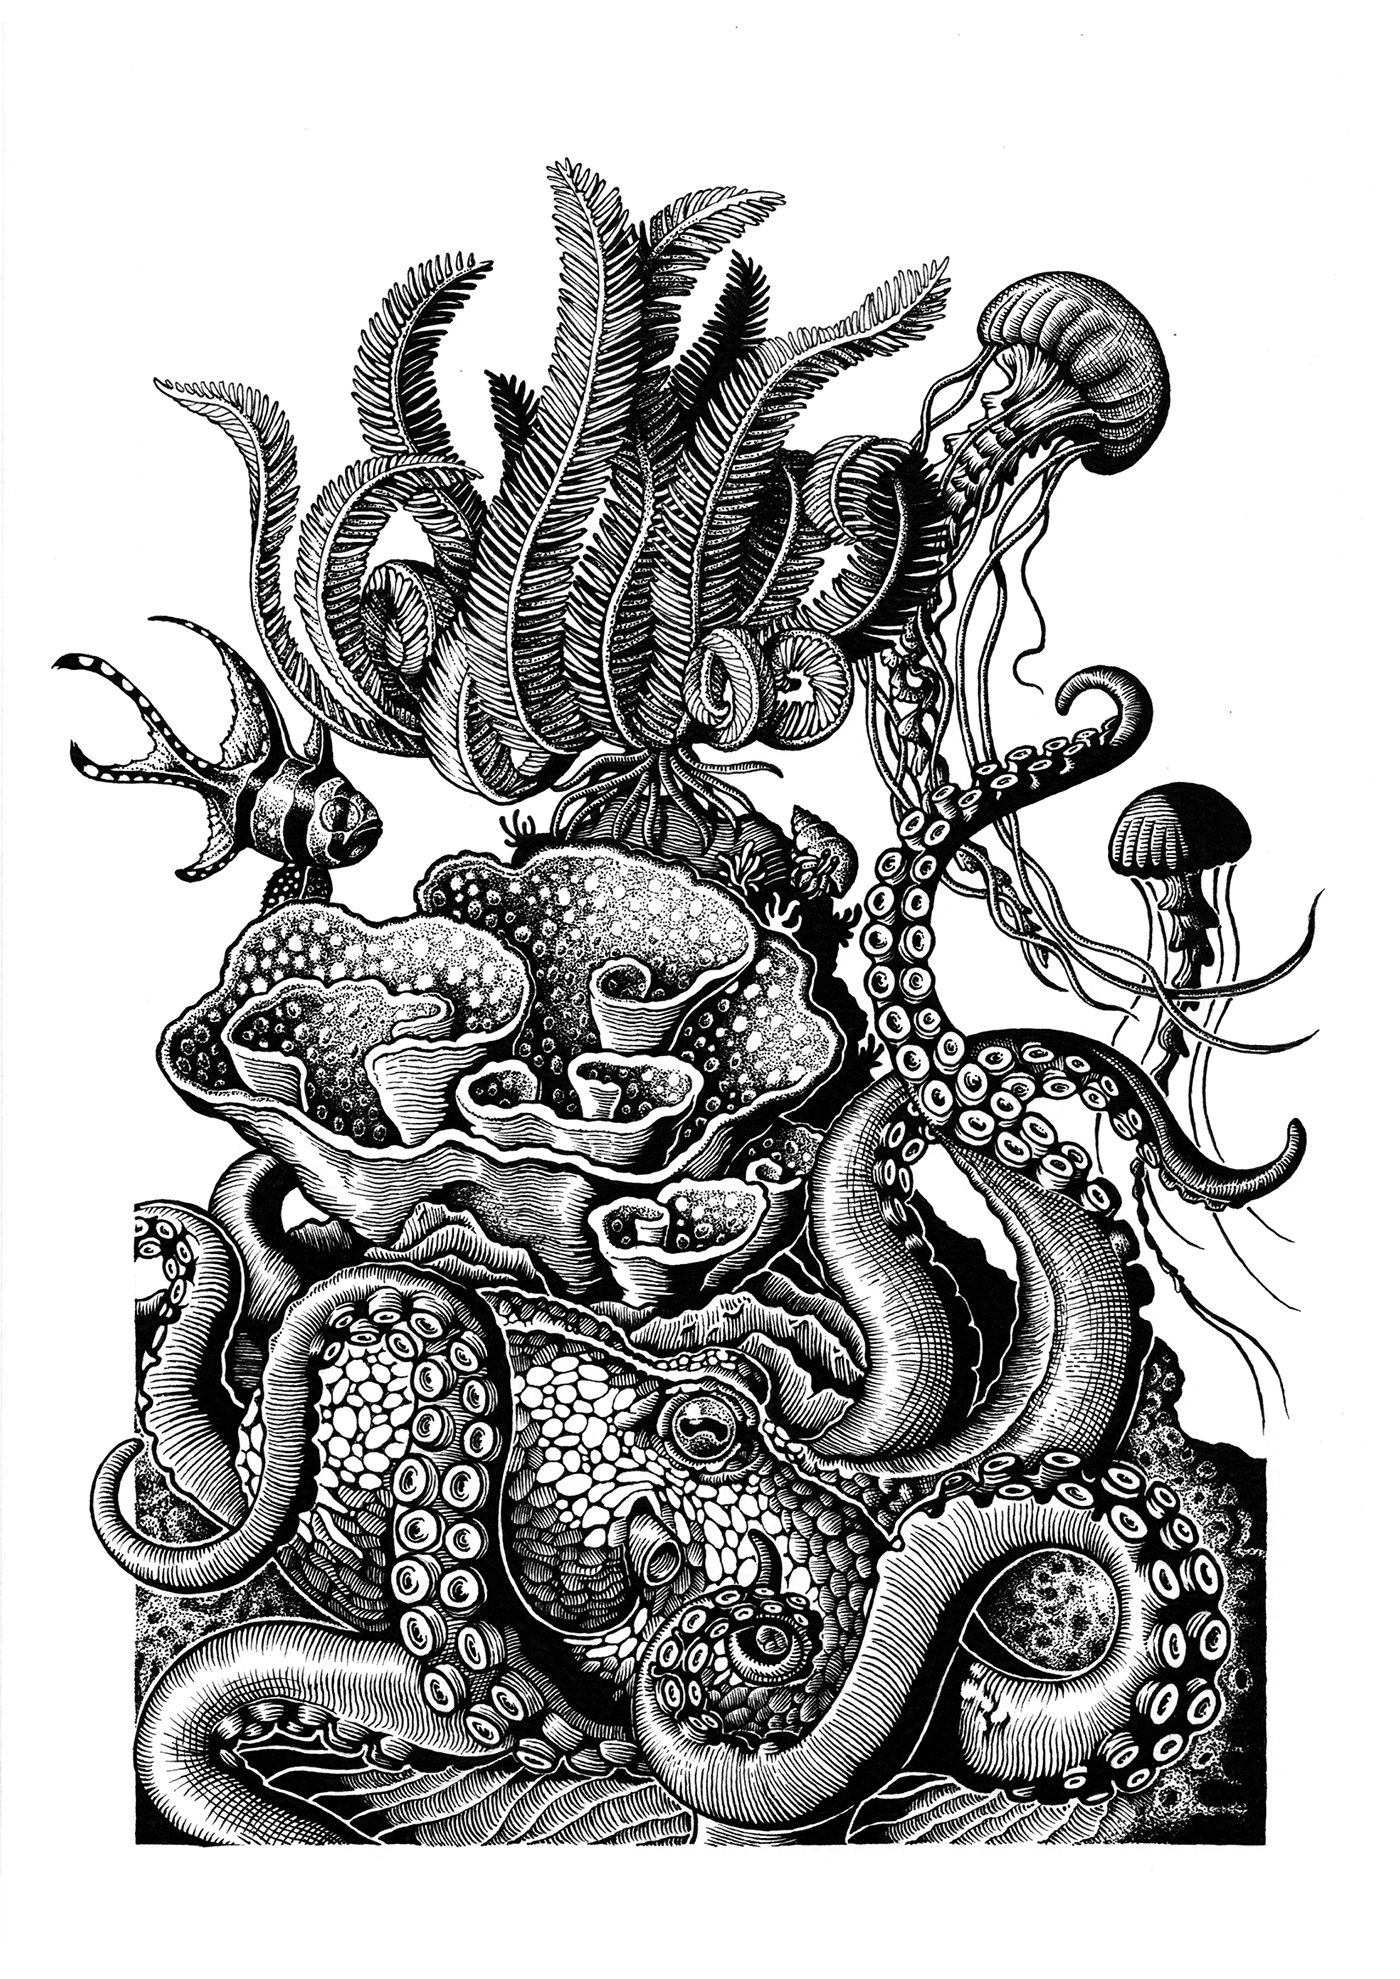 Series Of 3 Pen And Ink Drawings On Behance